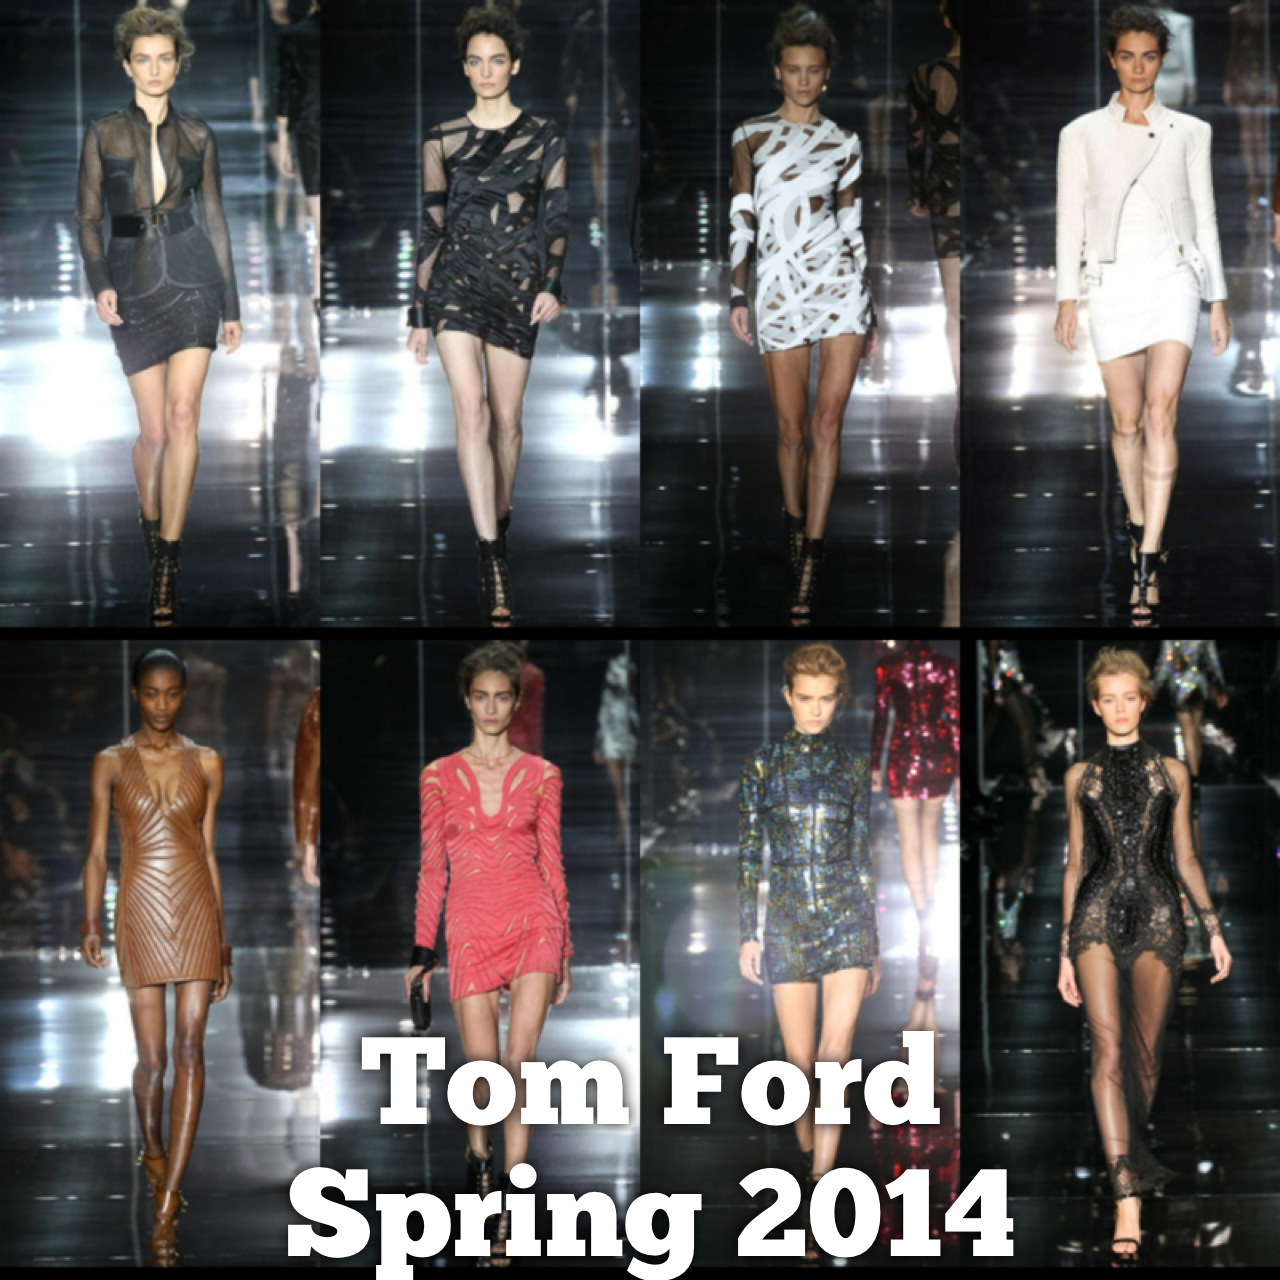 Sprig 2014 Tom Ford